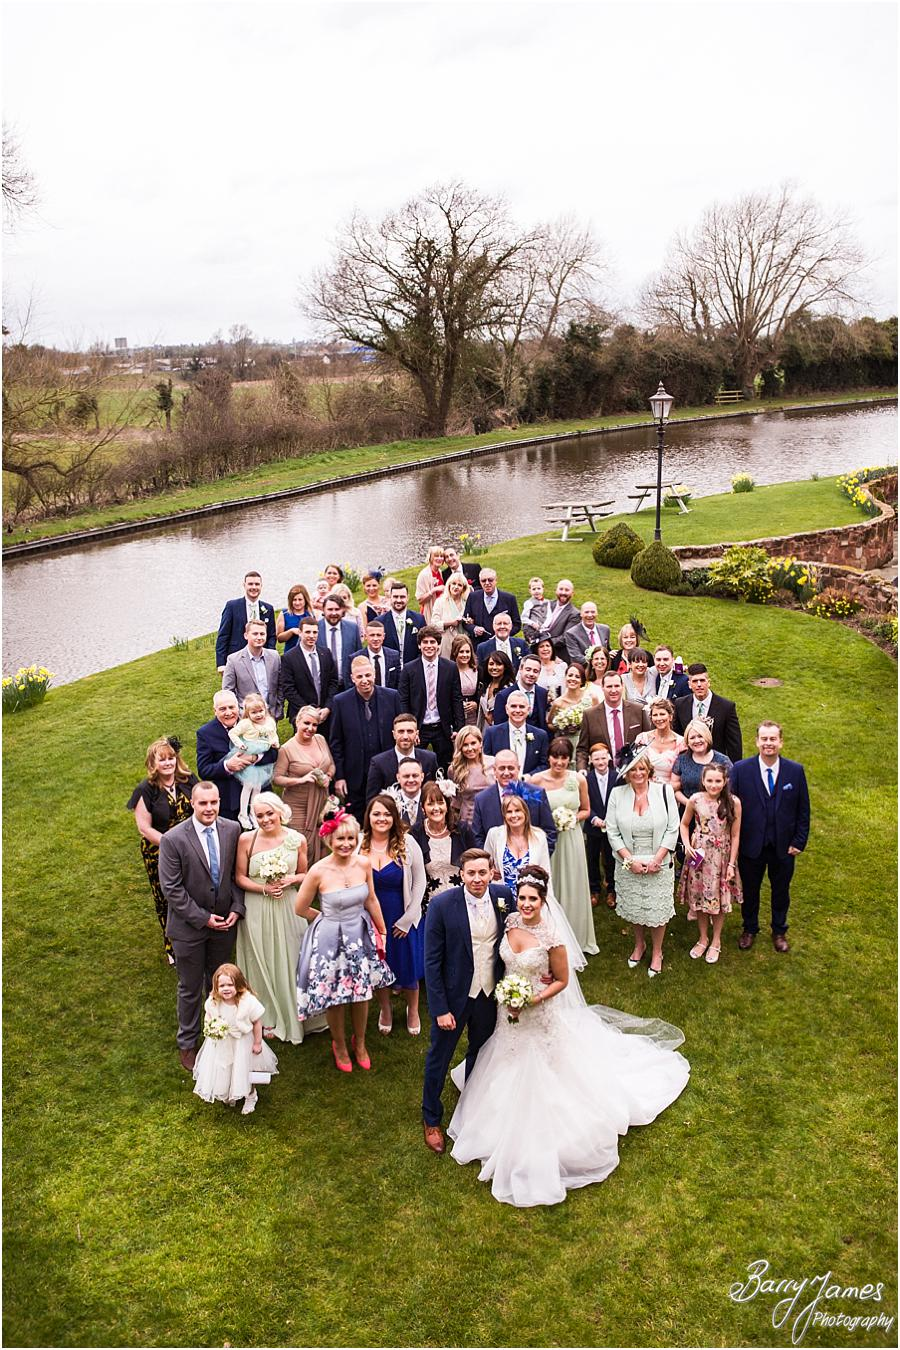 Big group photograph on the canal side